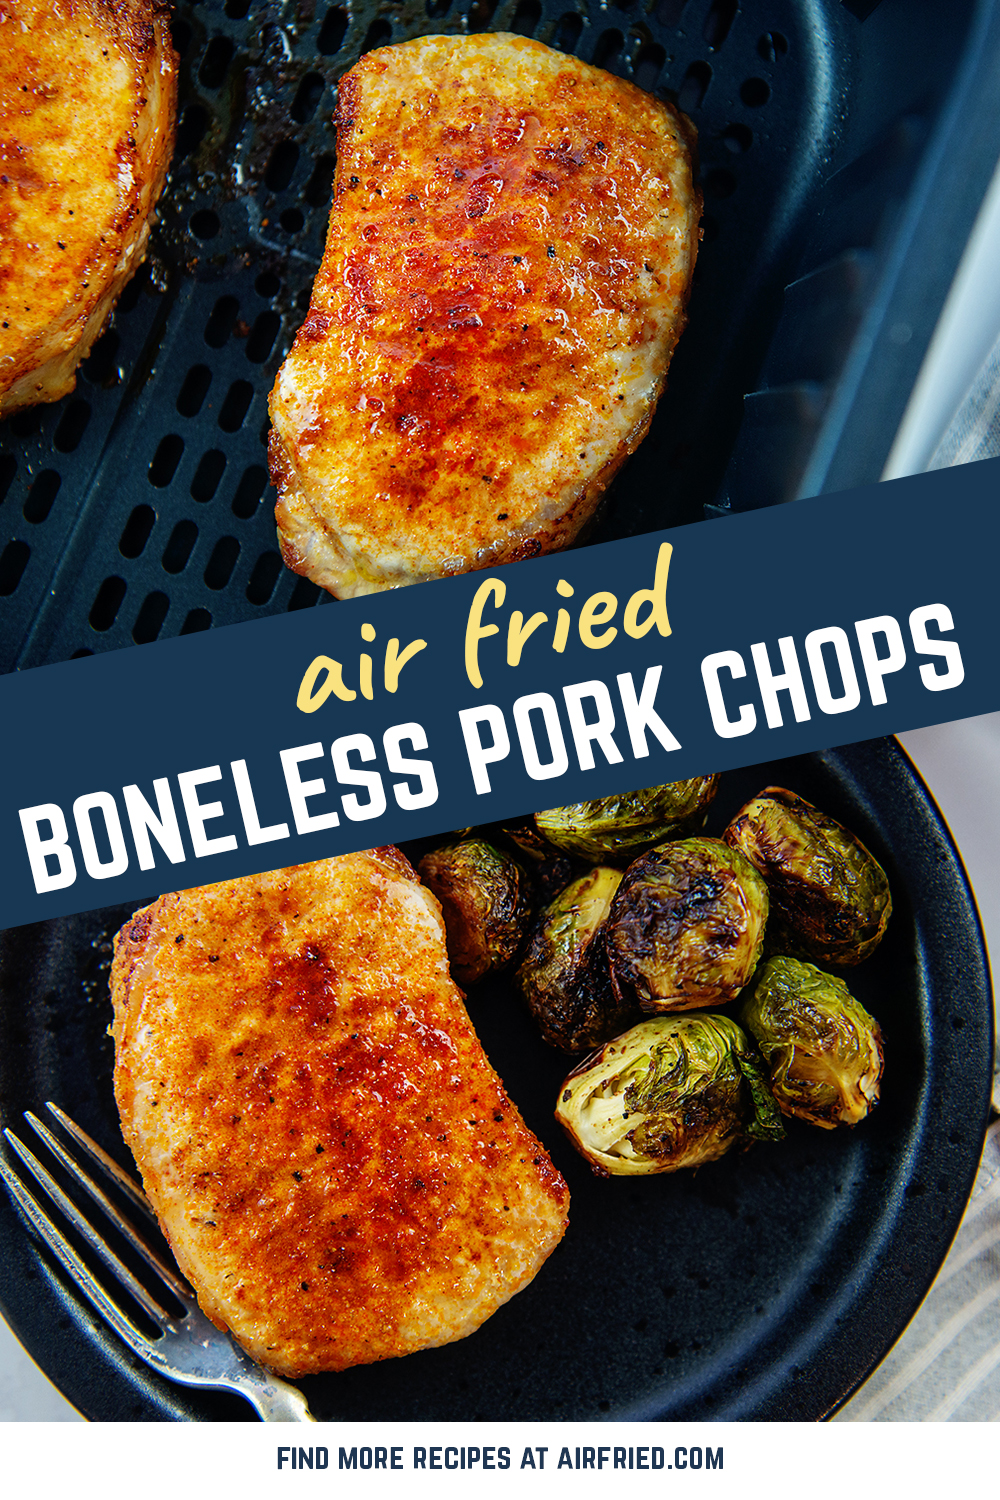 Boneless chops, seasoned with garlic, and air fried to perfection can be found in this recipe!